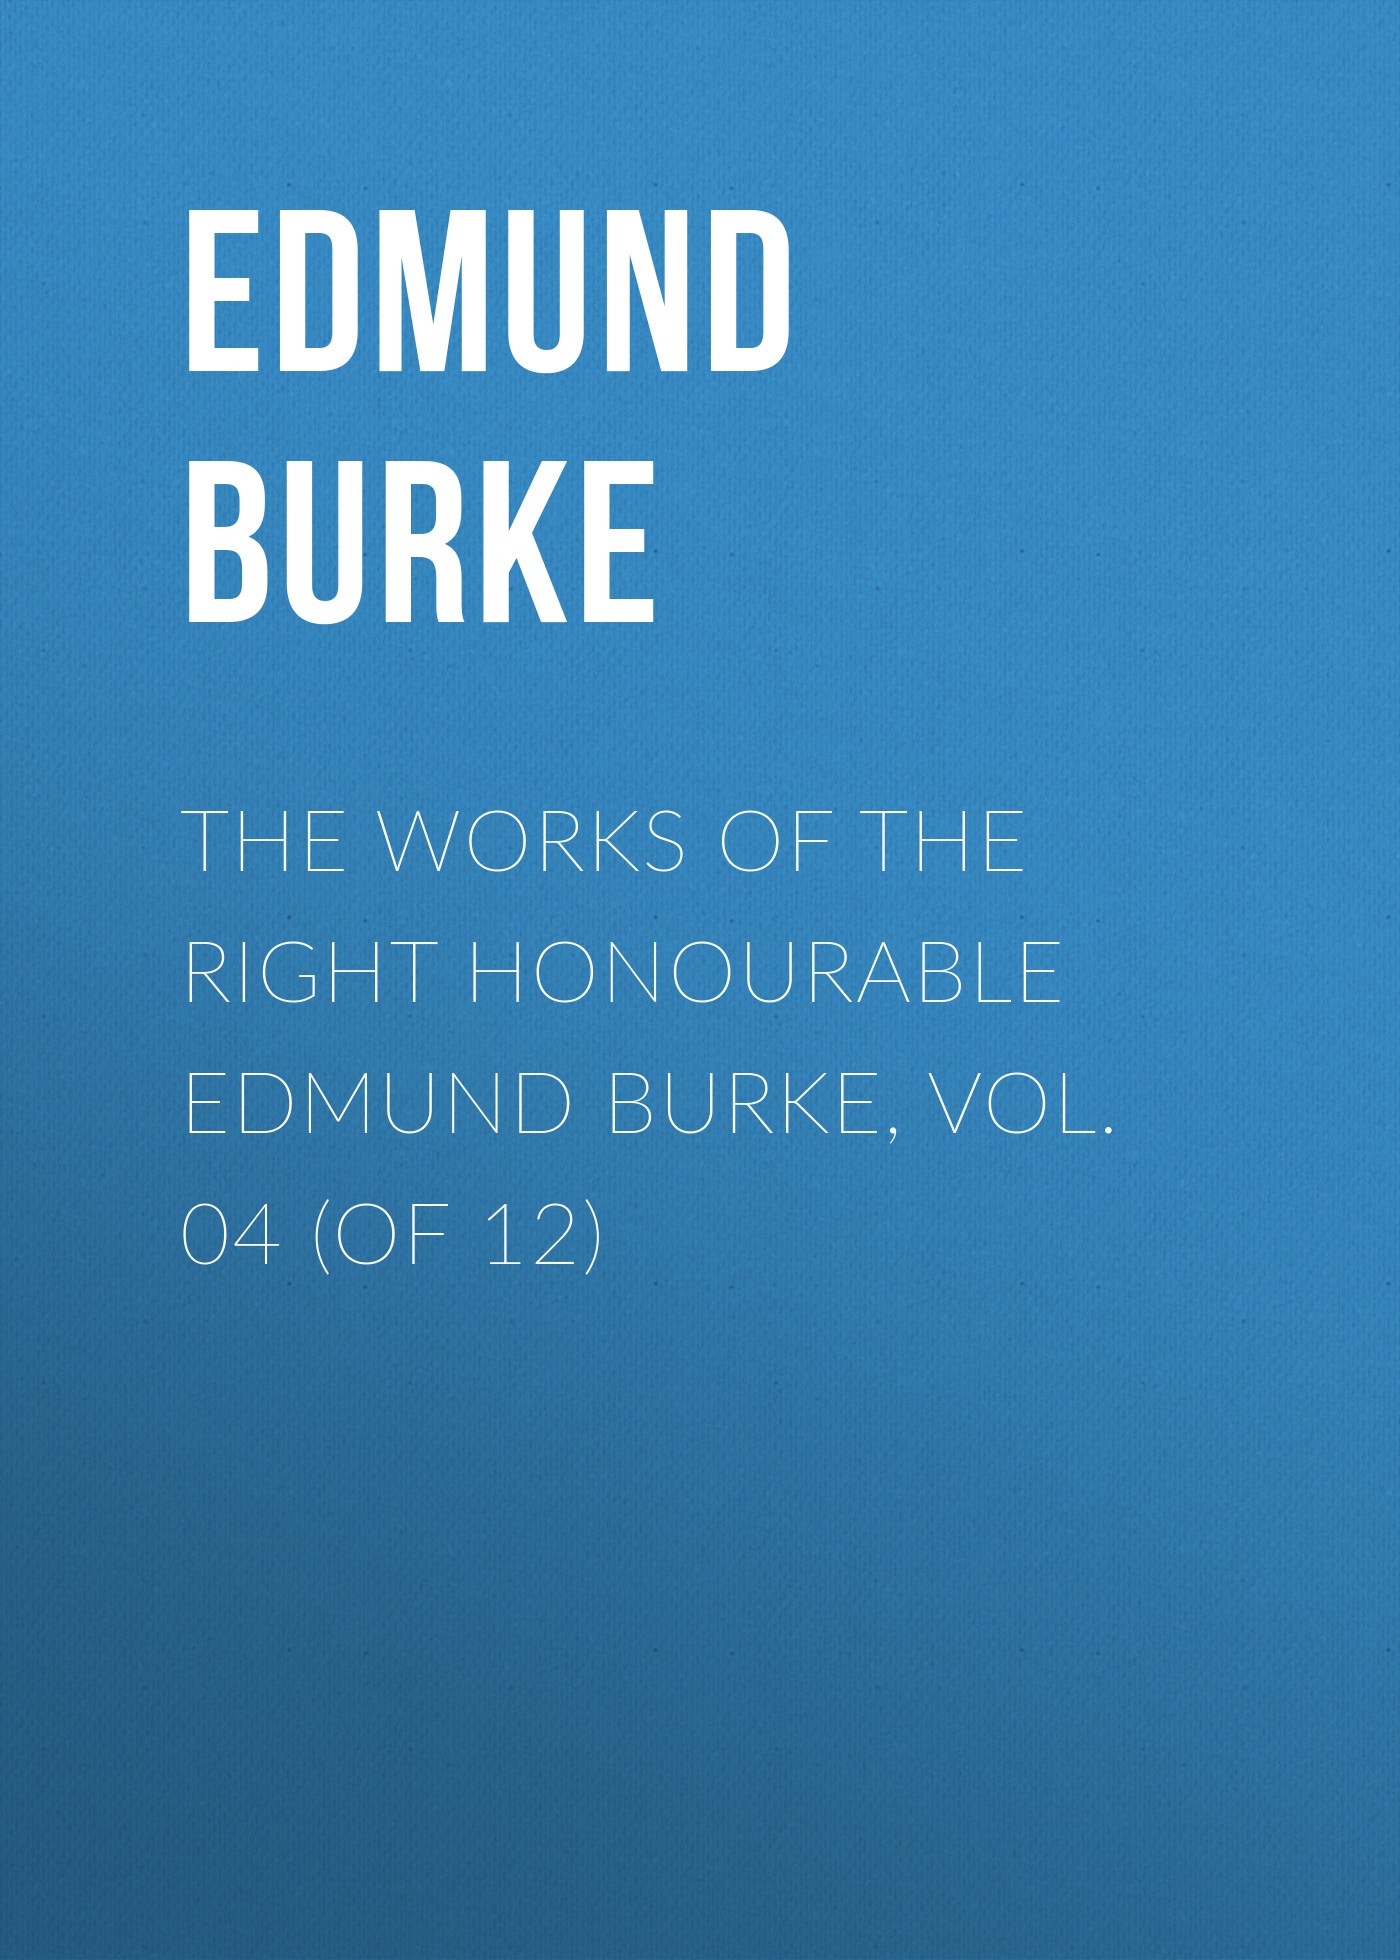 Edmund Burke The Works of the Right Honourable Edmund Burke, Vol. 04 (of 12) burke edmund the speeches of the right honourable edmund burke on the impeachment of warren hastings